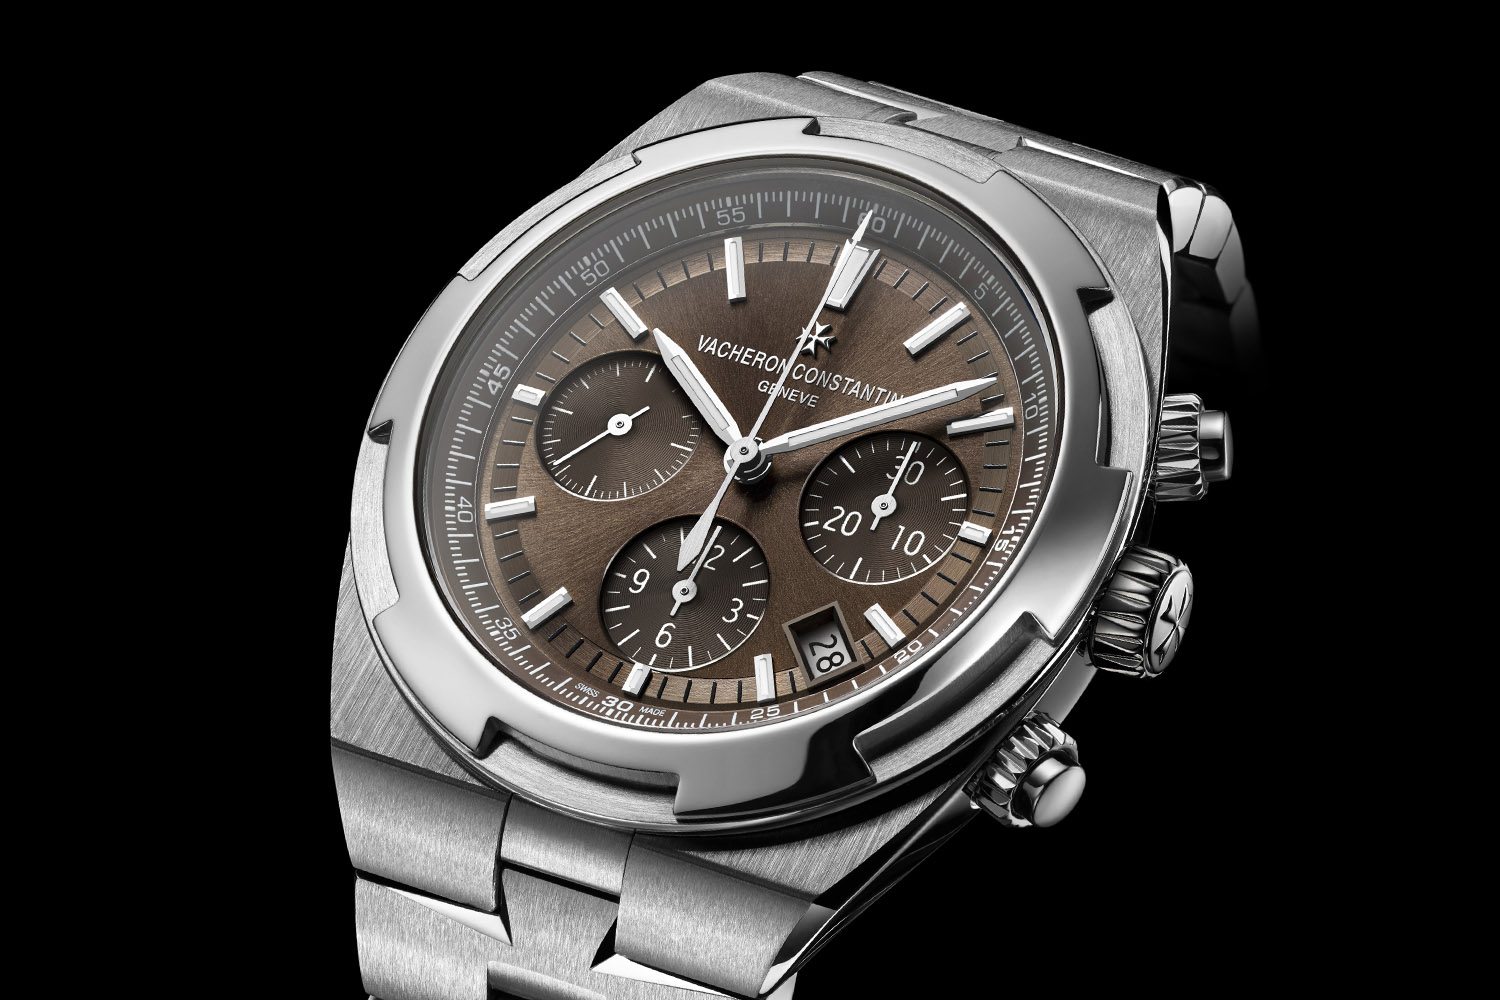 Vacheron Constantin Overseas chronograph 5500v - brown dial - 2